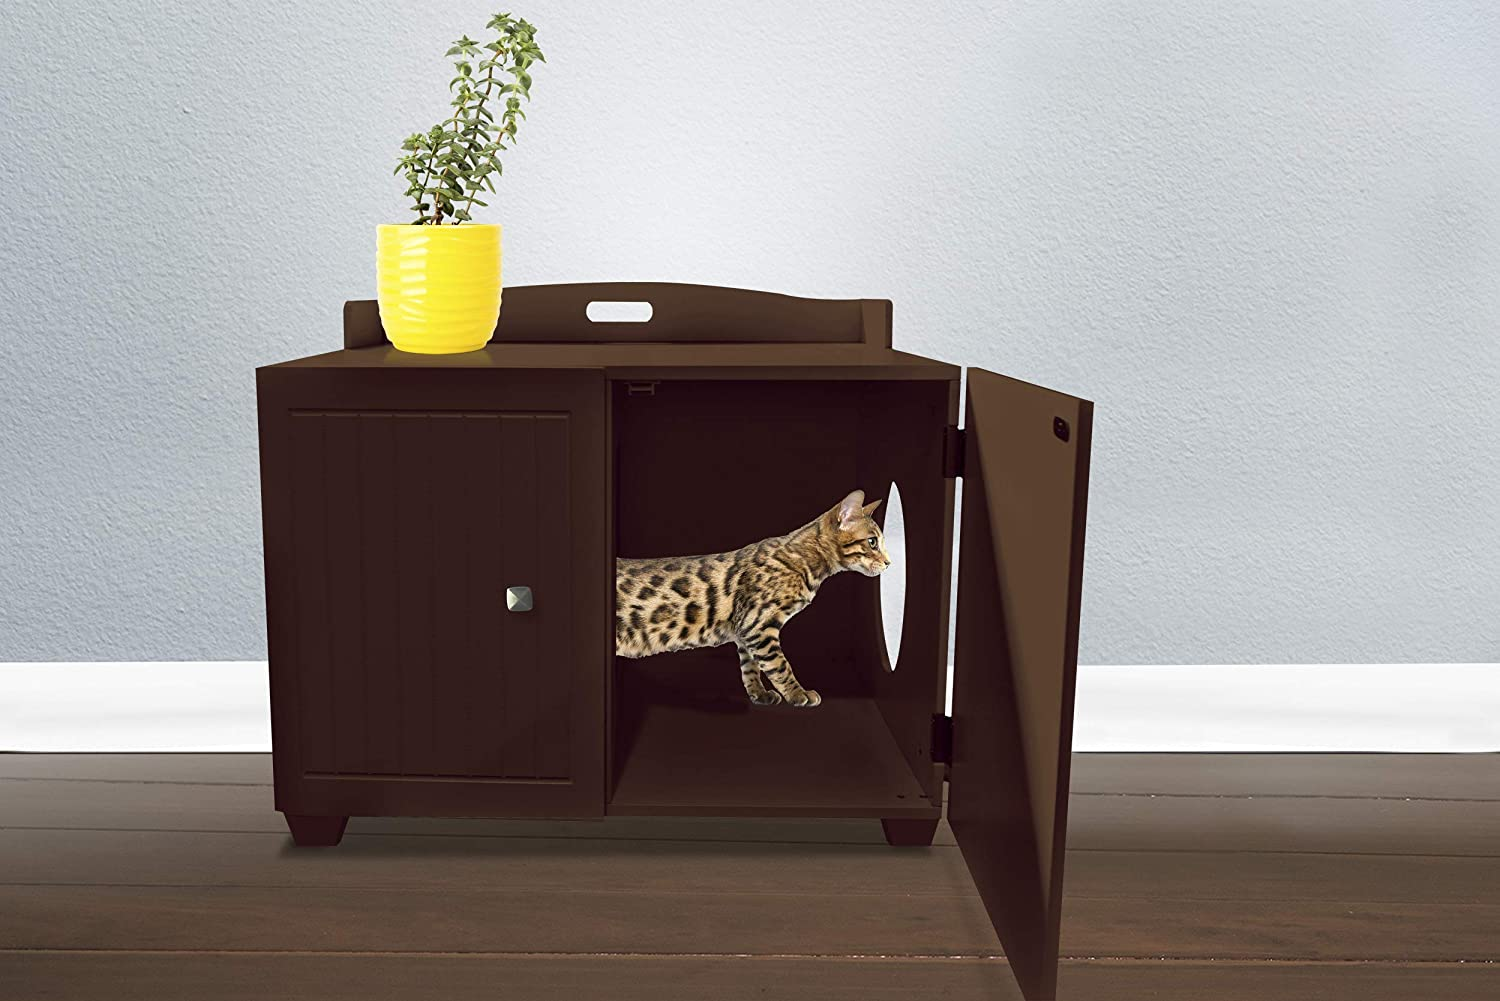 Furhaven Pet - Cat Litter Floor Mat Protector, Litter Box Storage Cabinet, & Secure Living Room Dog Crate End Table for Dogs & Cats - Multiple Styles & Colors